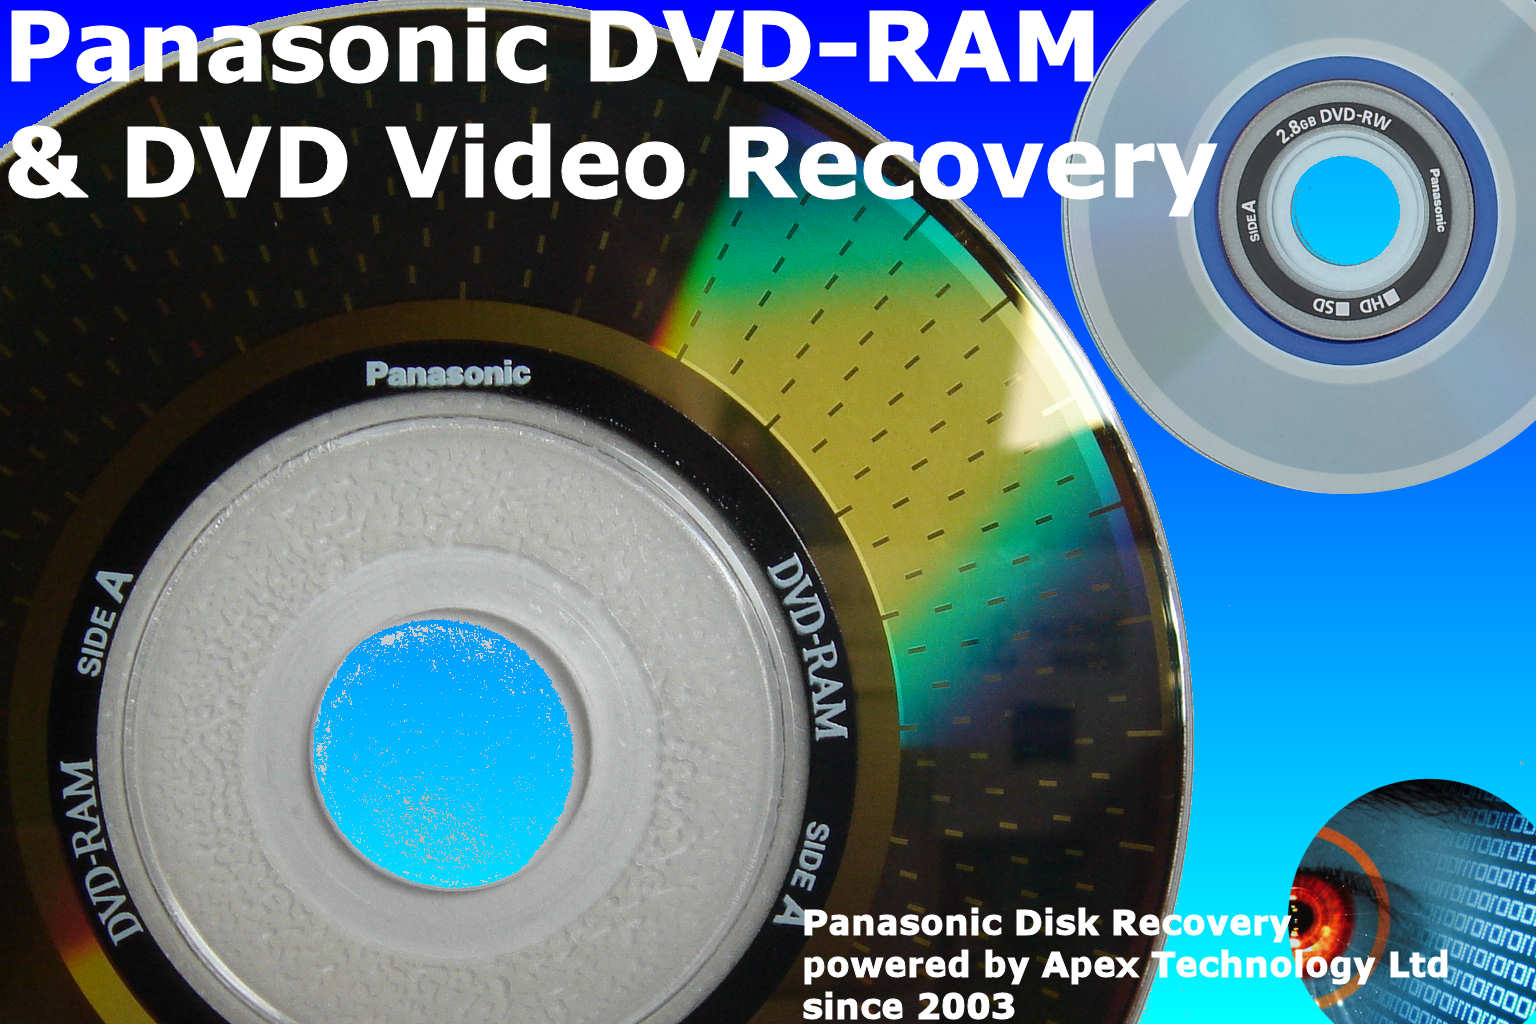 Panasonic DVDRAM corrupt disk video recovery conversion to DVD